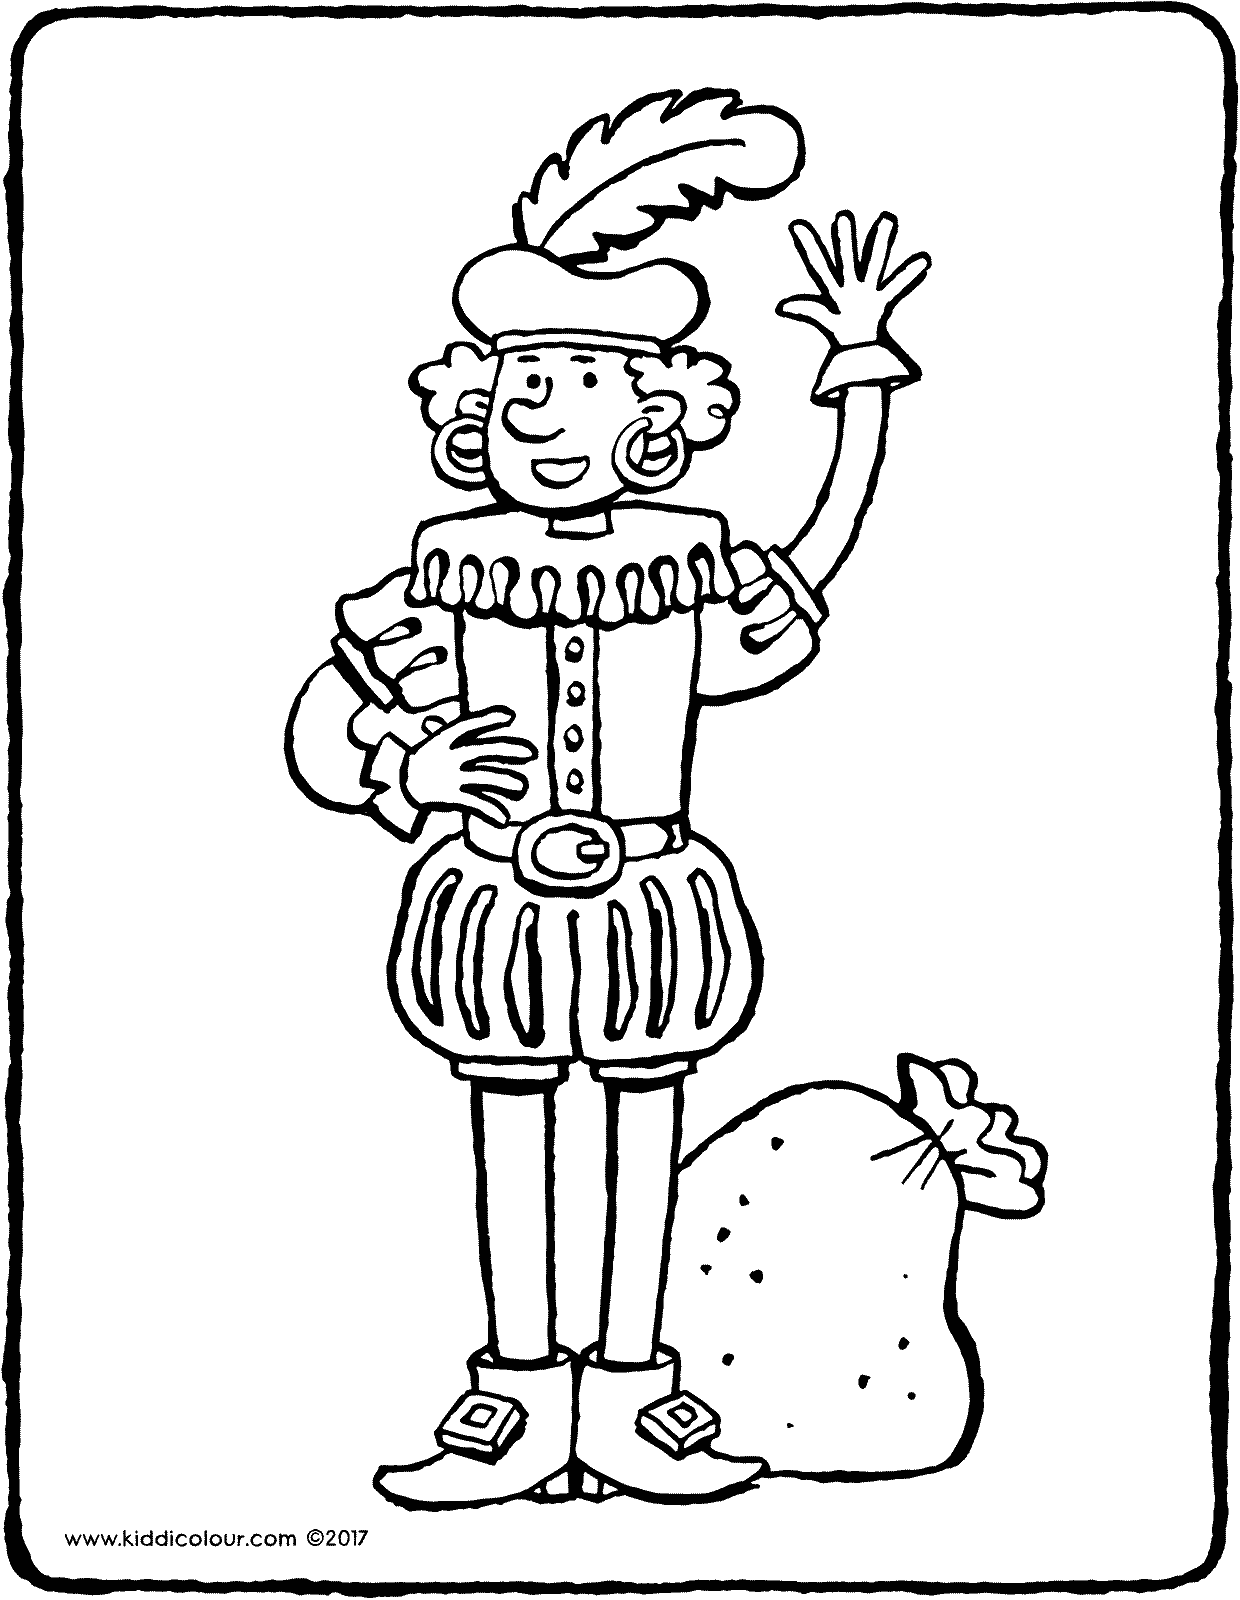 Black Pete colouring page drawing picture 06V